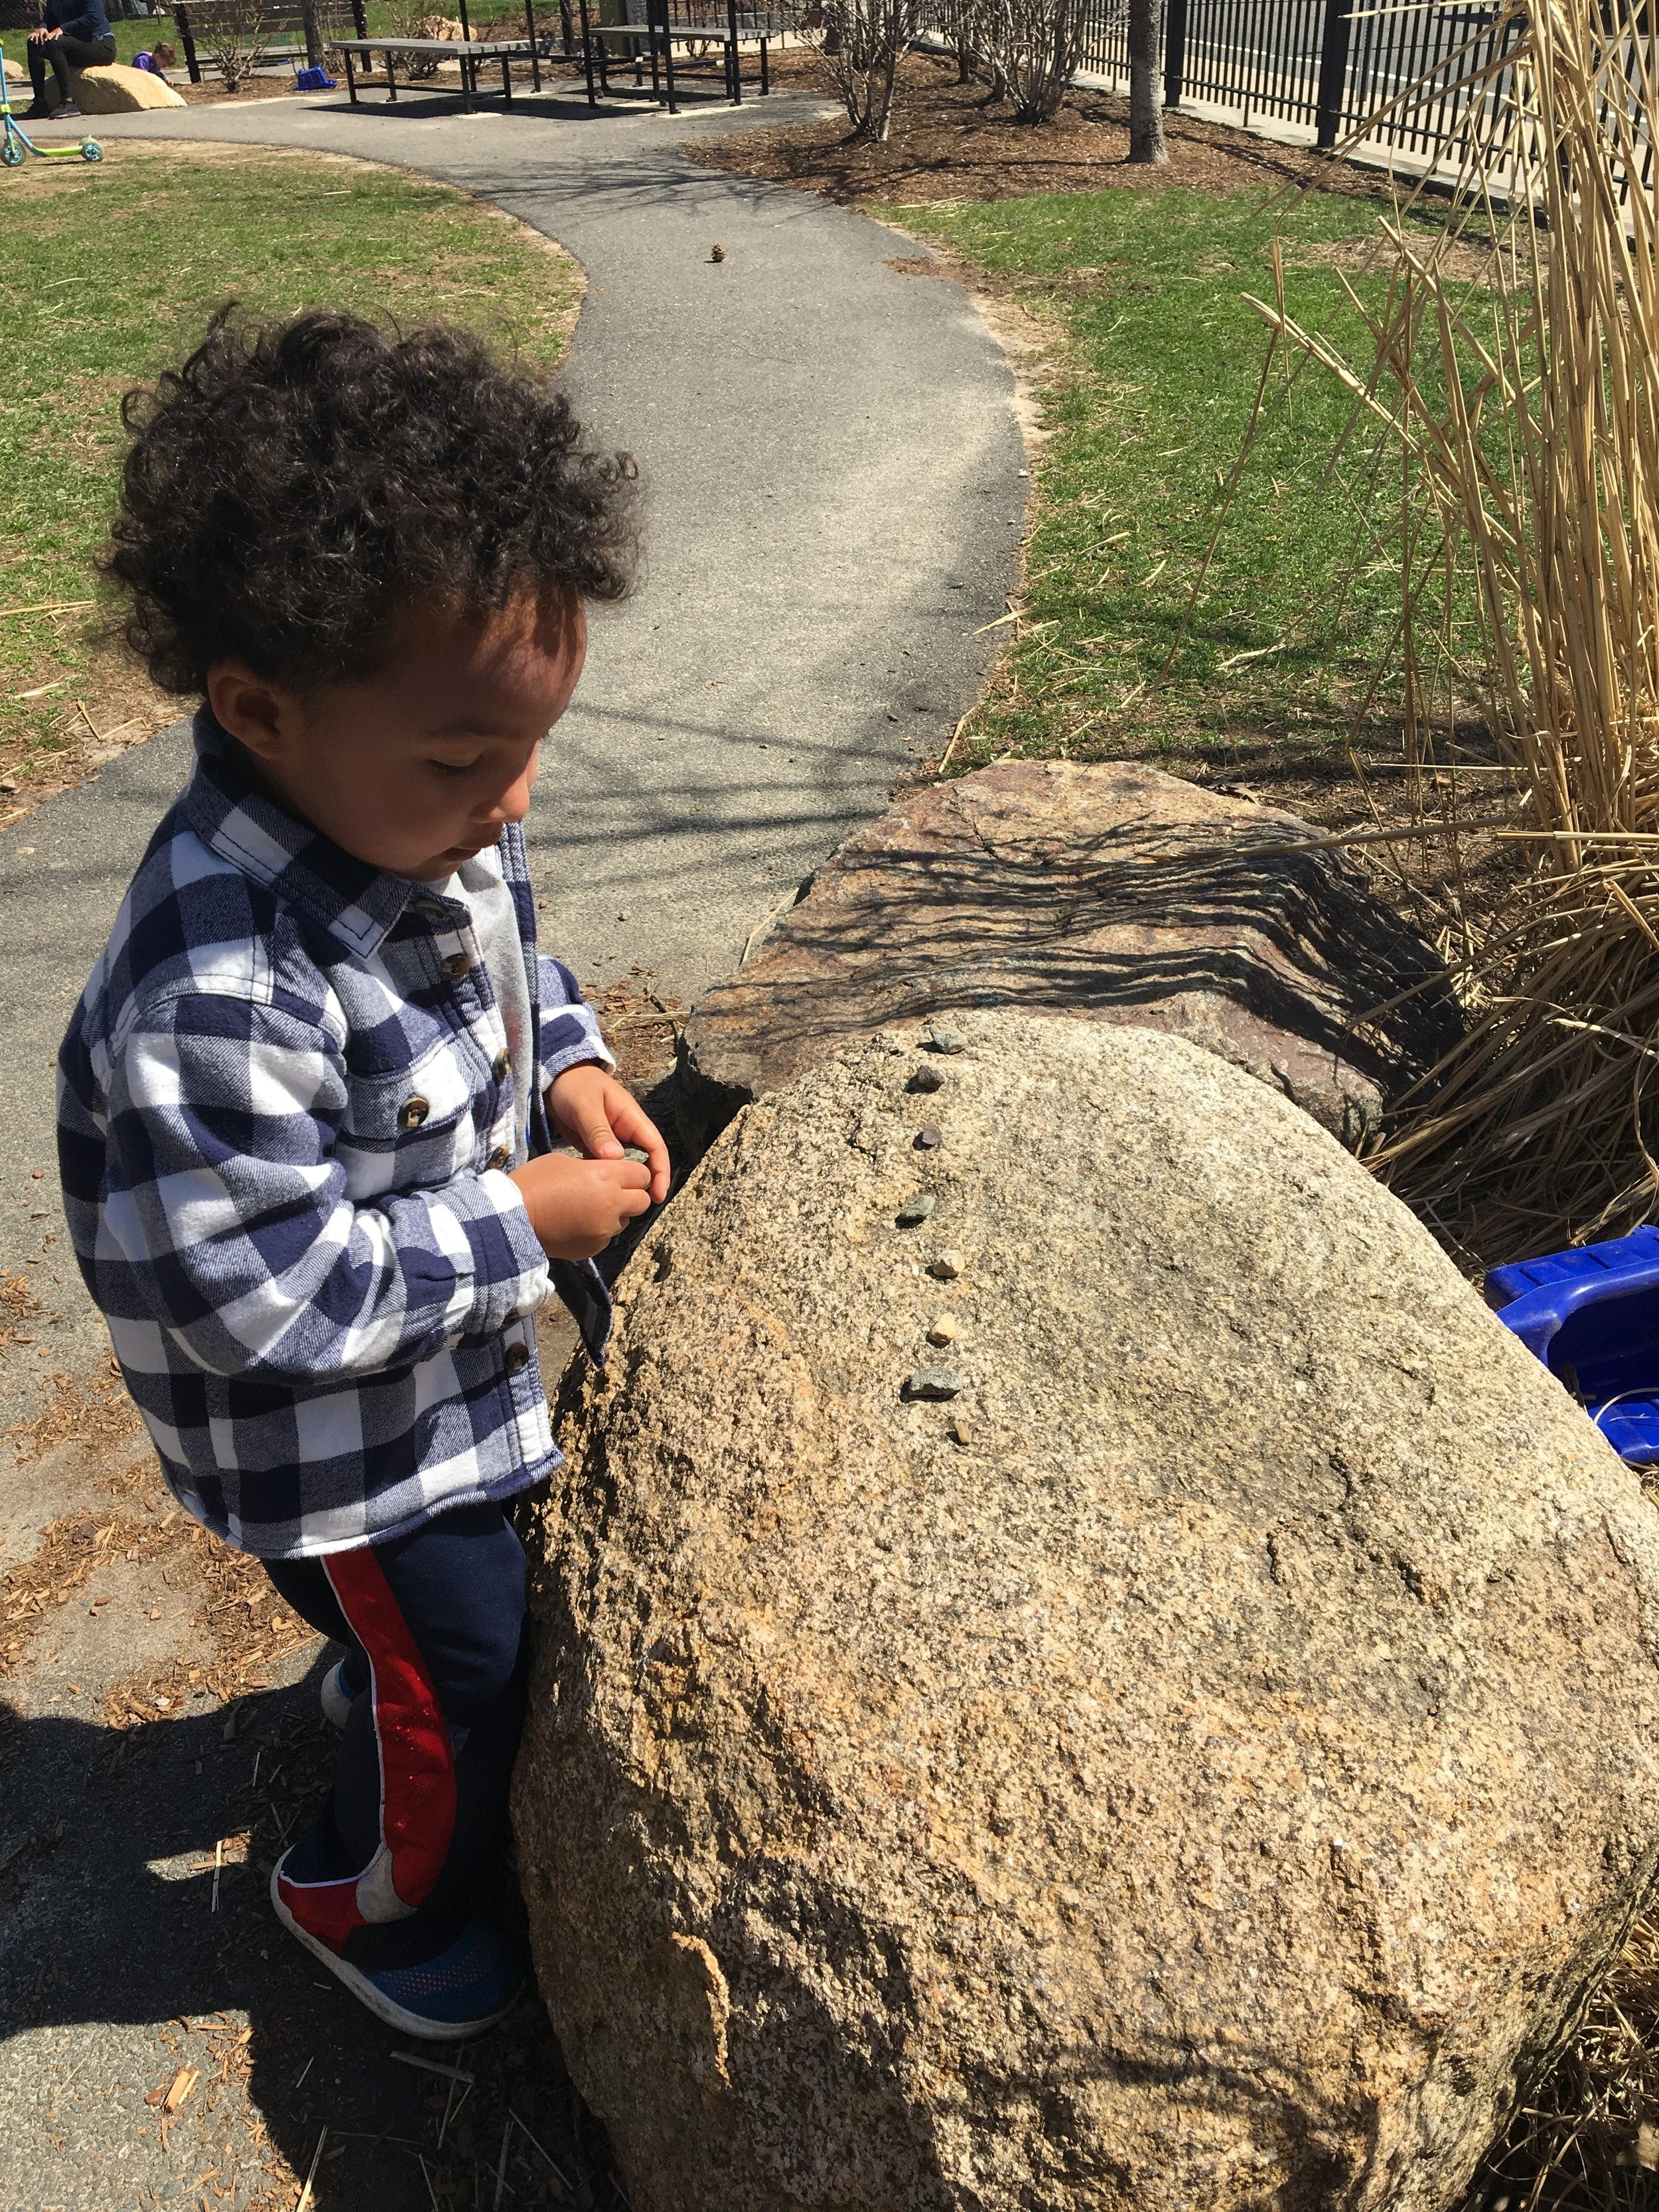 - Using natural materials in our play